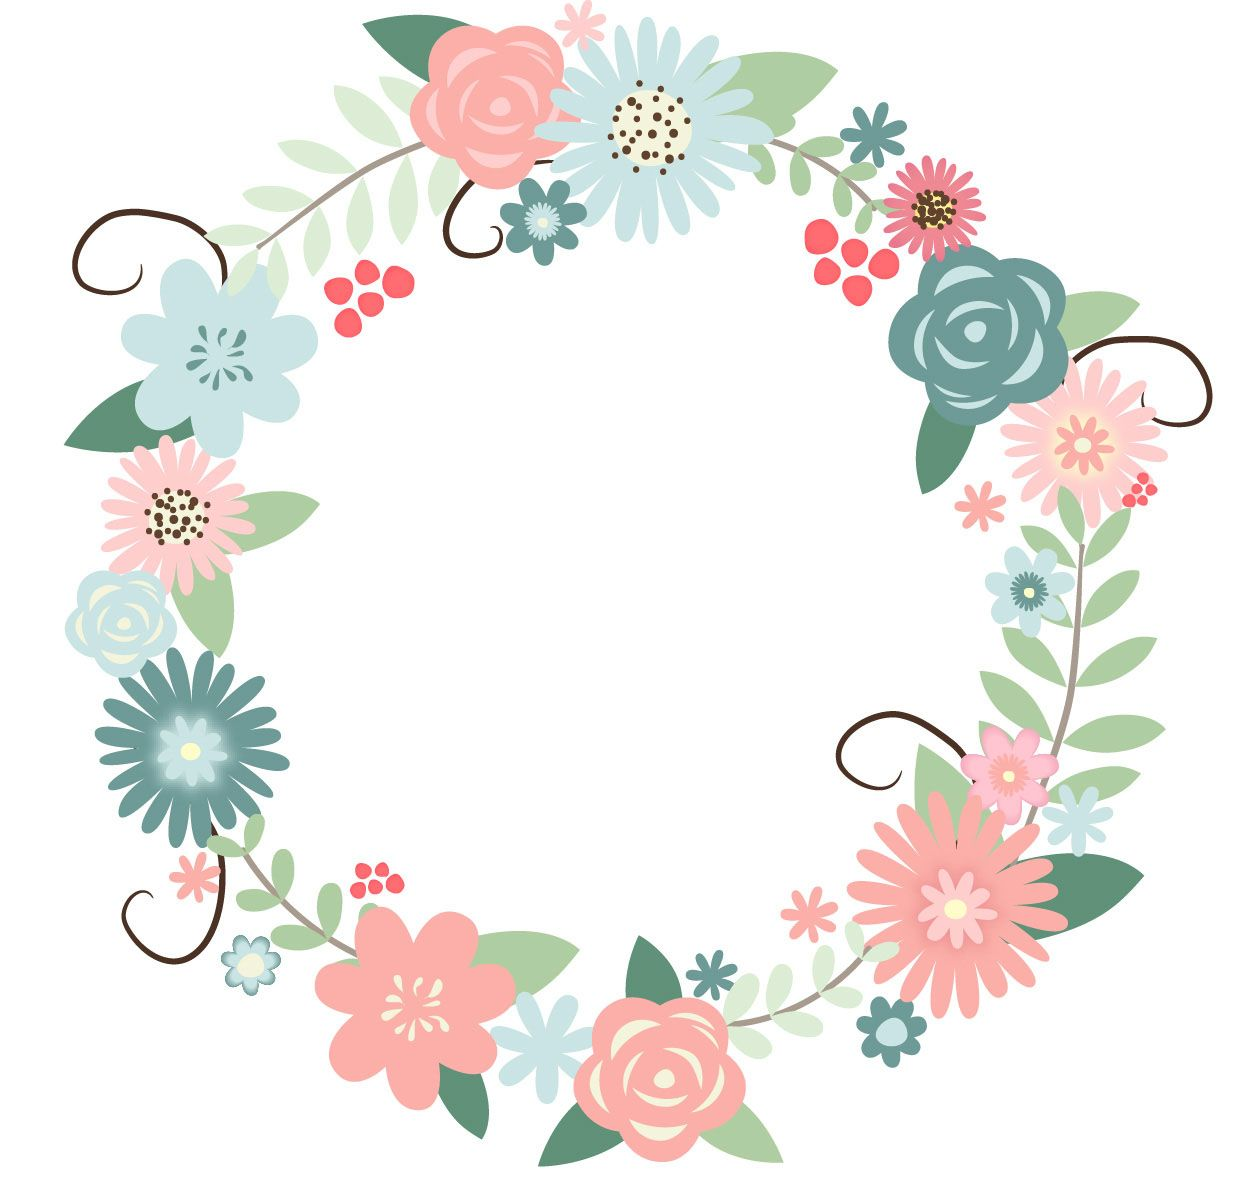 Daisy Flower Drawing Tumblr Recolored floral wreath. | Casamento ...